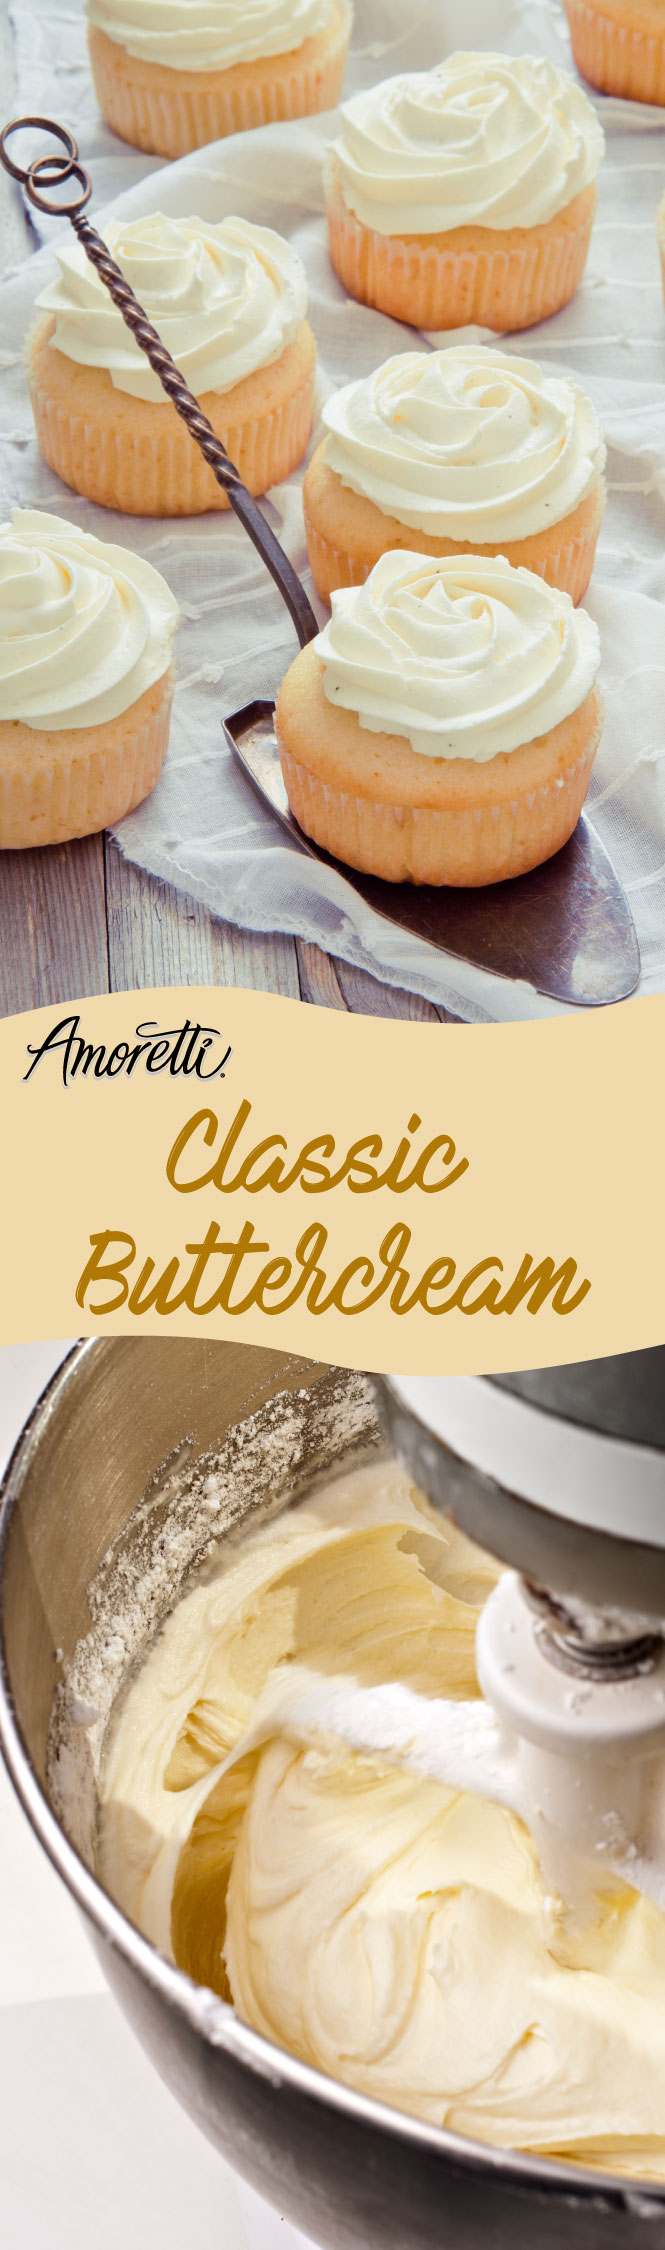 Super quick recipe for a classic American buttercream that can be used to frost any cake or cupcake!